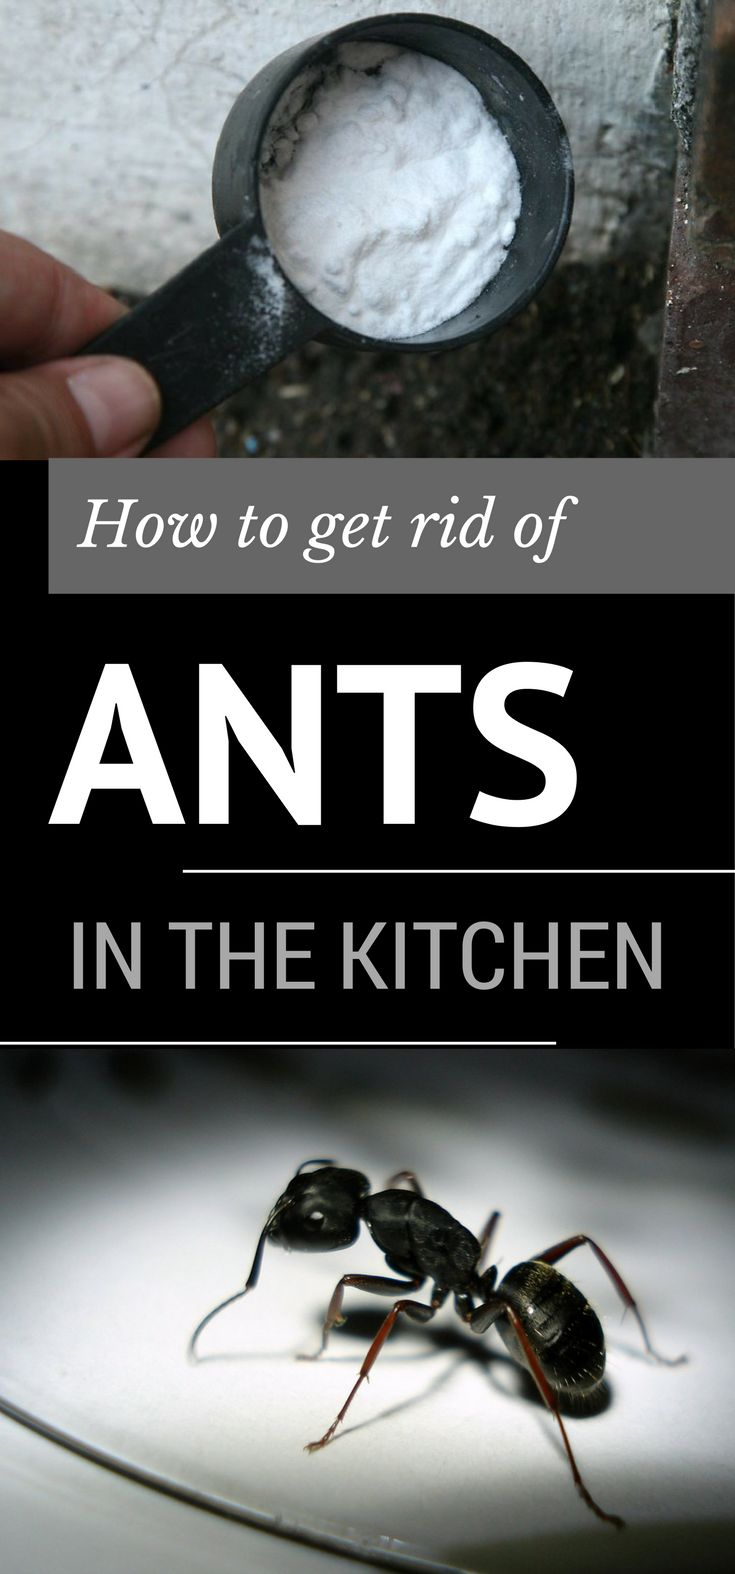 Here are the best methods to get rid of ants in the kitchen.